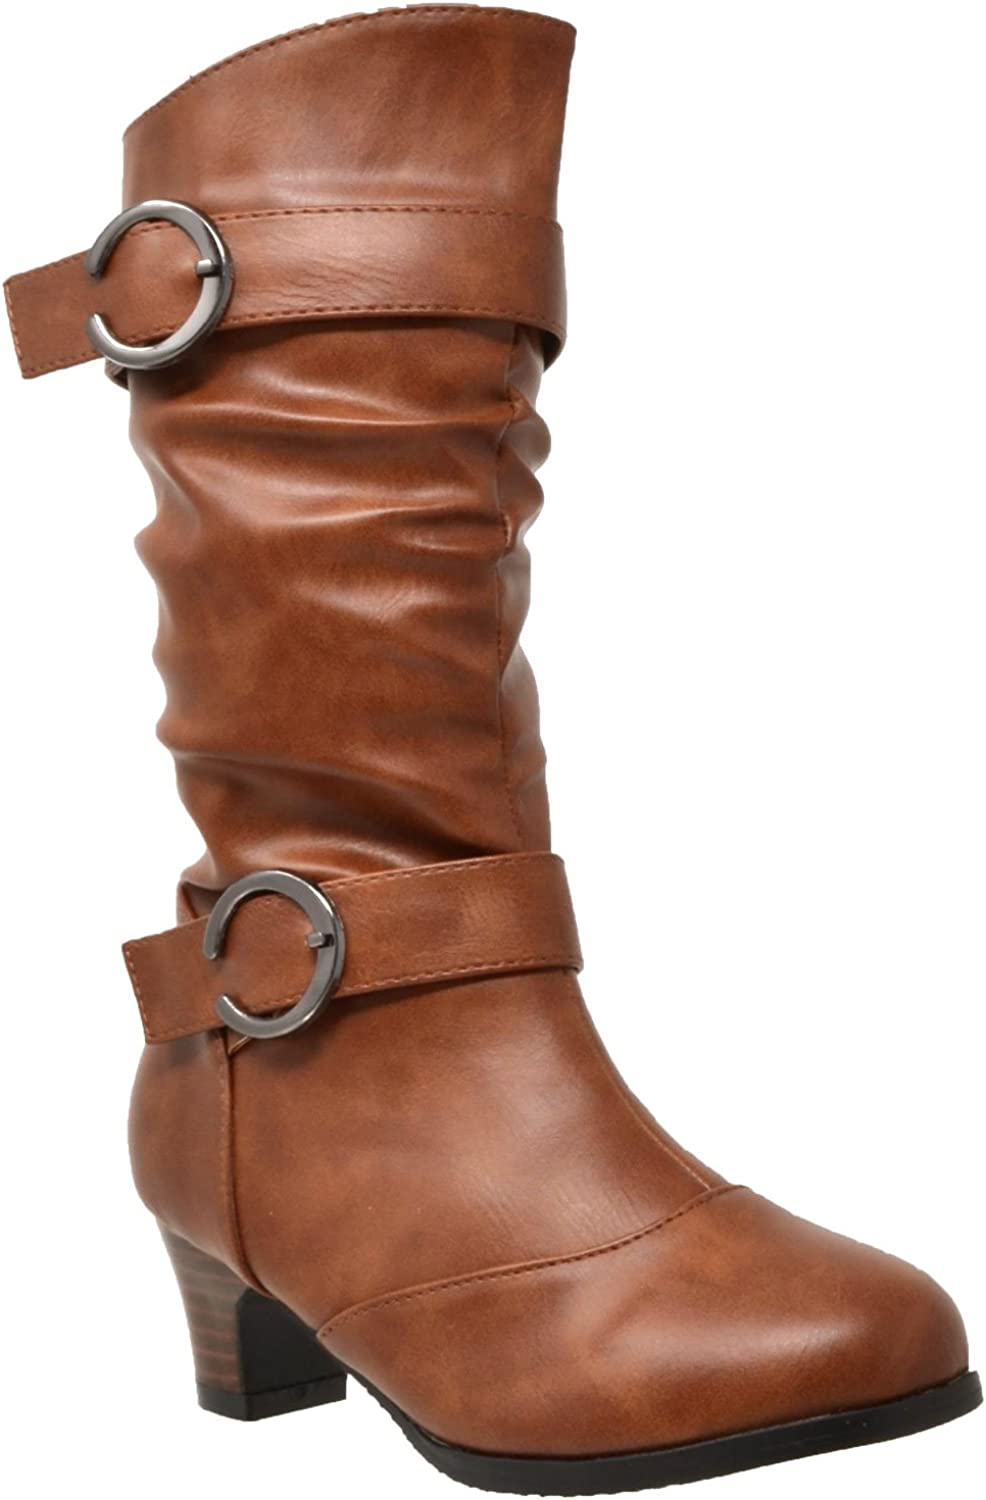 Generation Y Kids Girls Boots Mid Calf